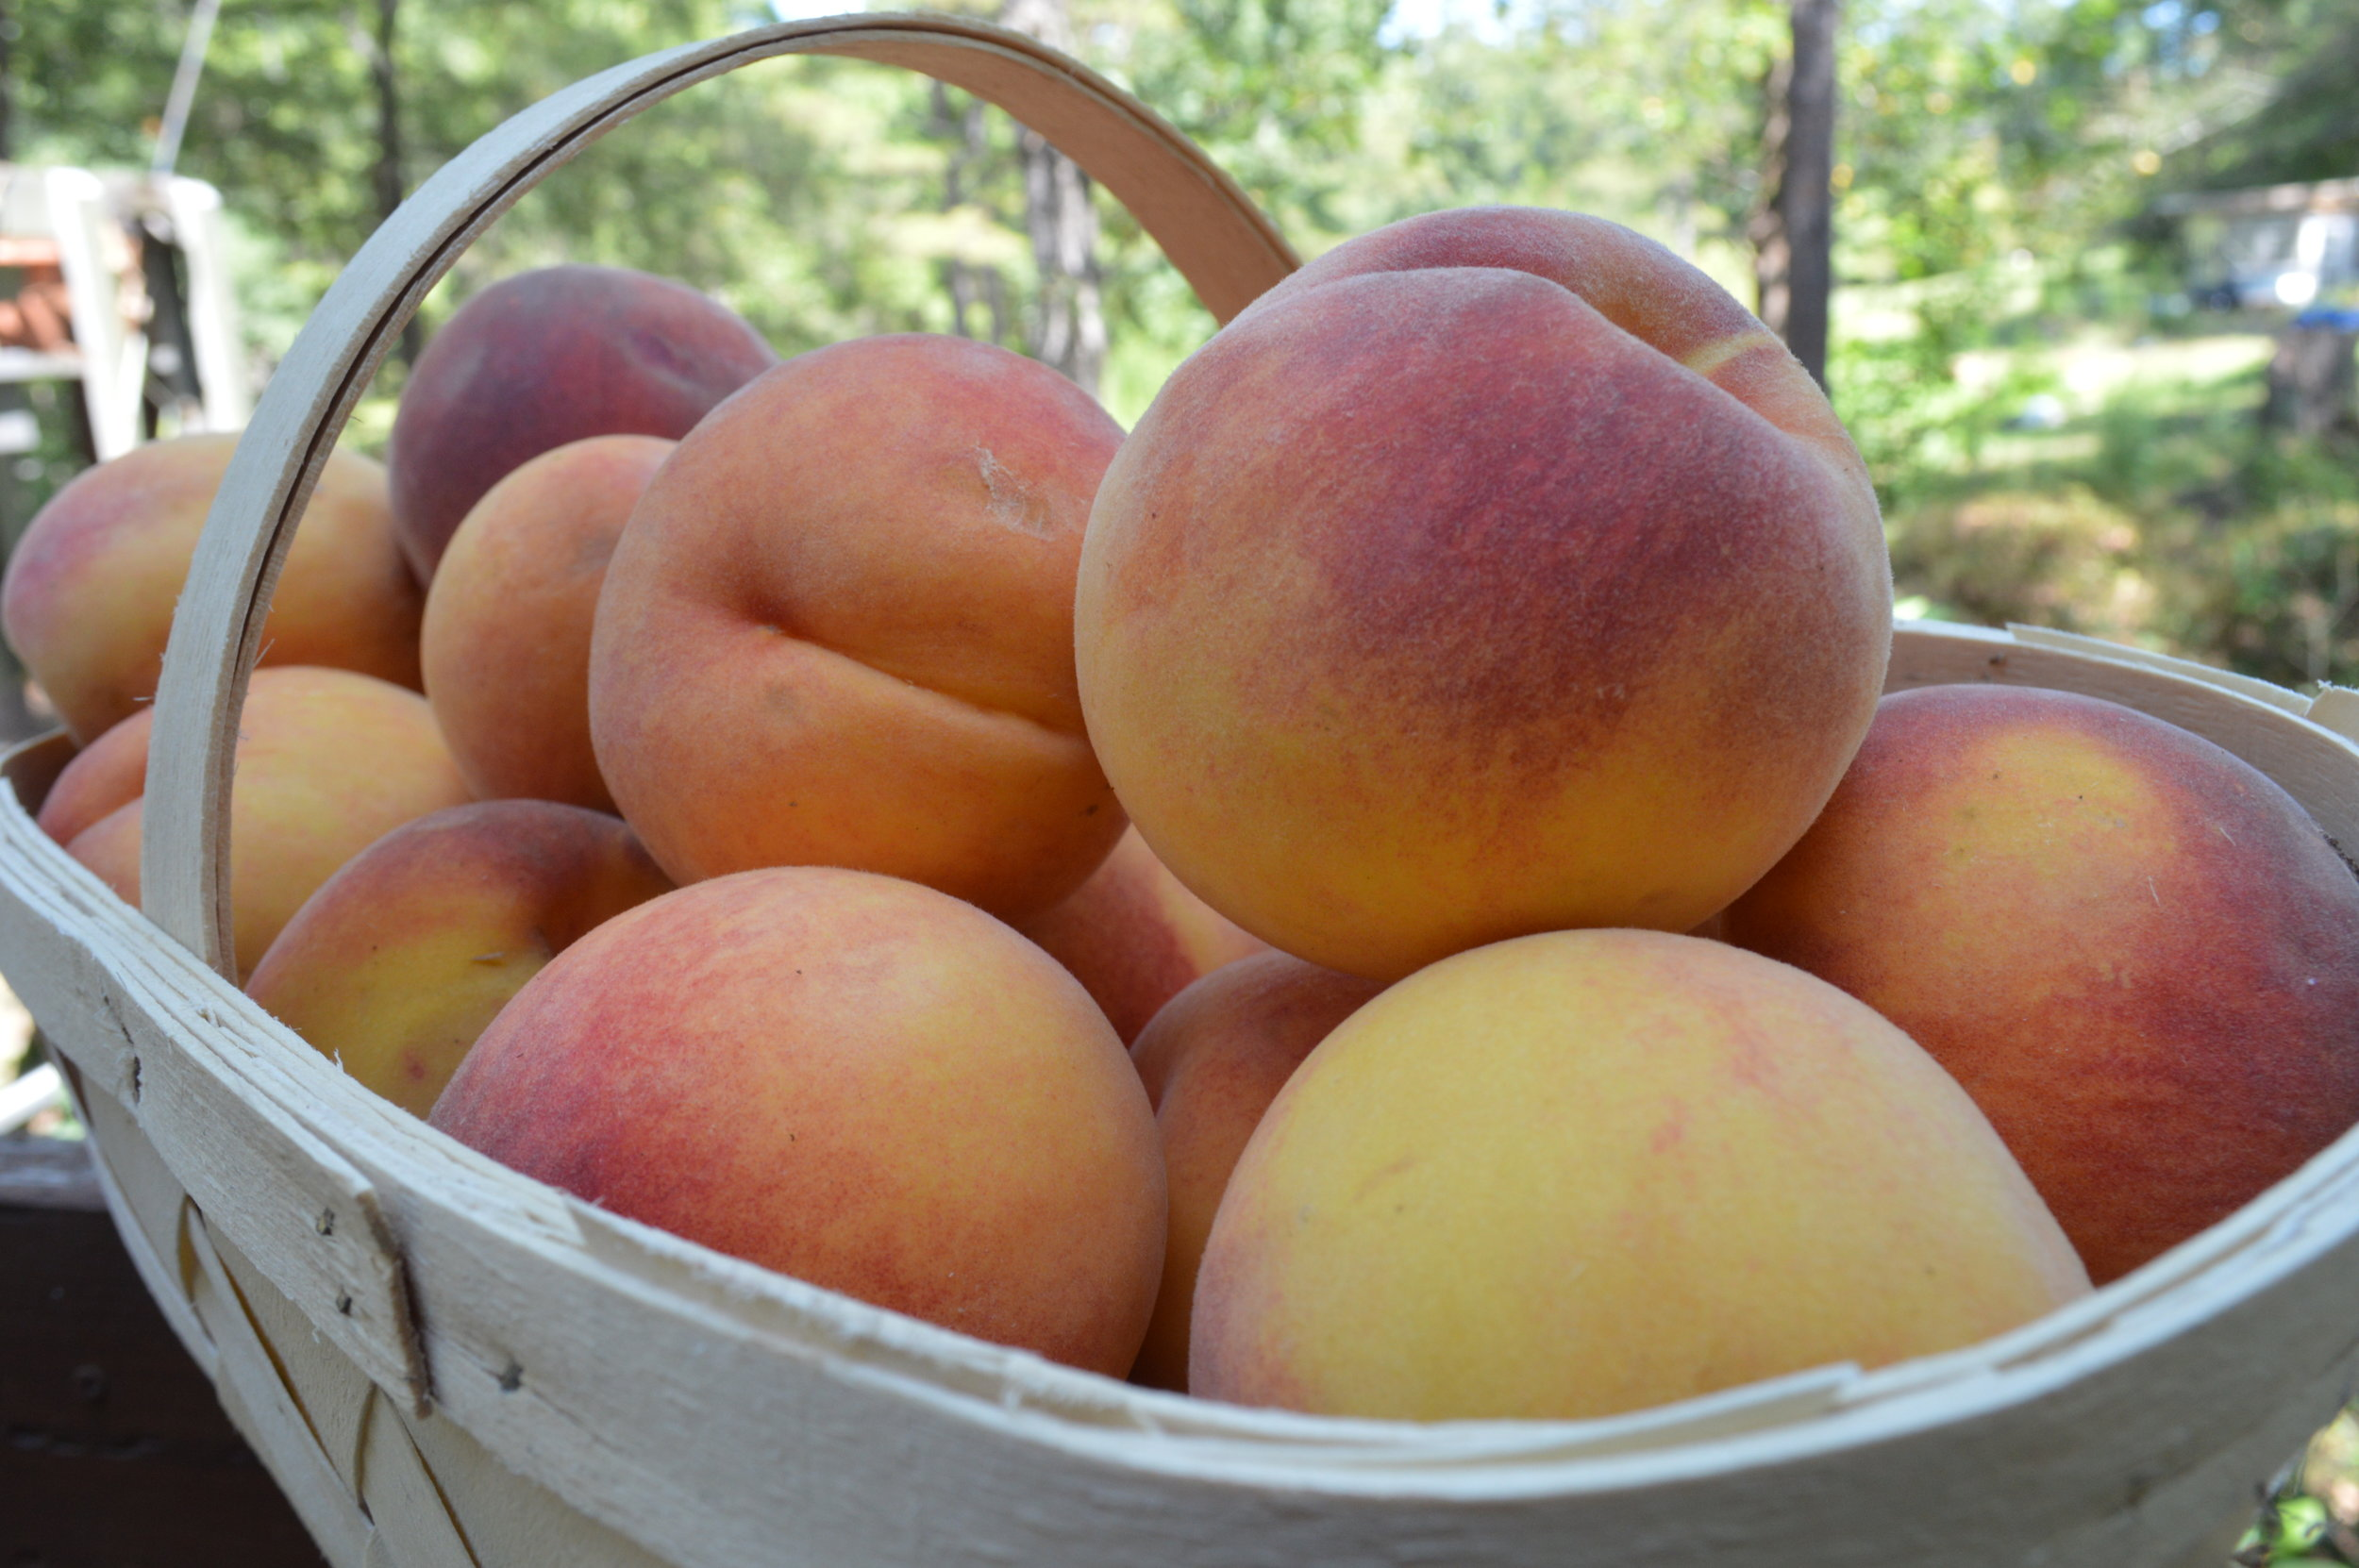 Basket of peaches from Bob and Lisa's produce in Powdersville